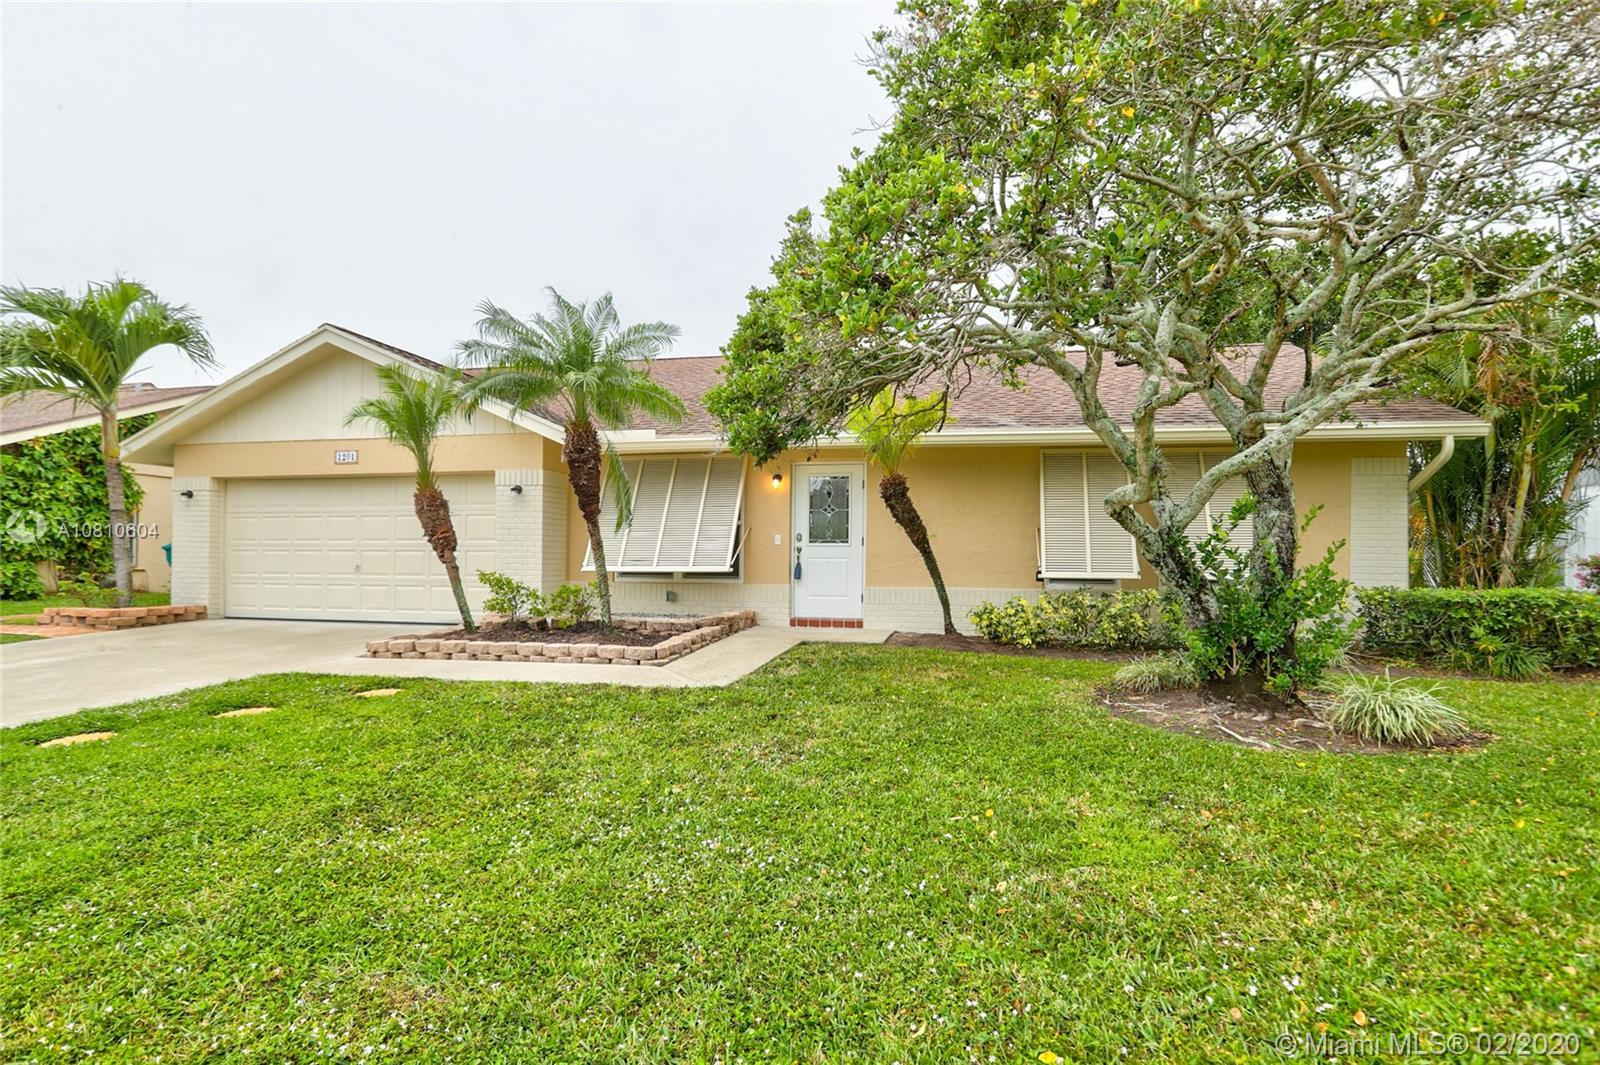 Captivating 4 bedroom, 2 bathroom single family home located in the coveted neighborhood of Sky Lake